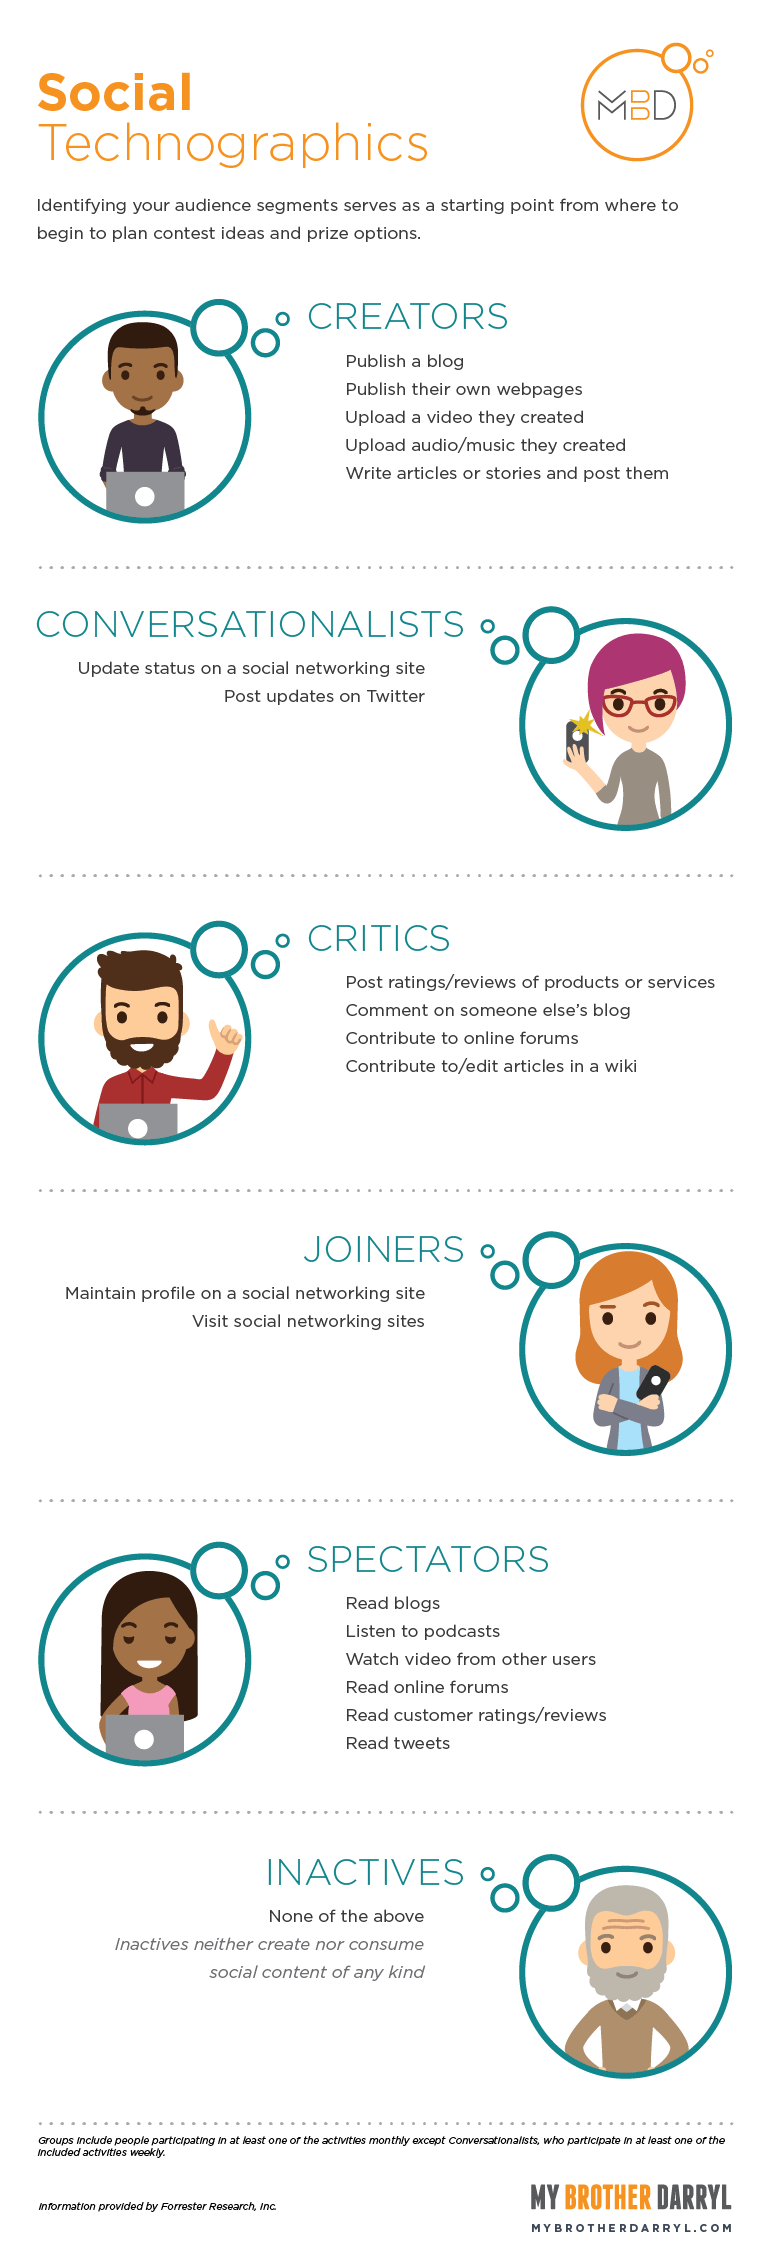 Social Technographics - Identifying your audience segments